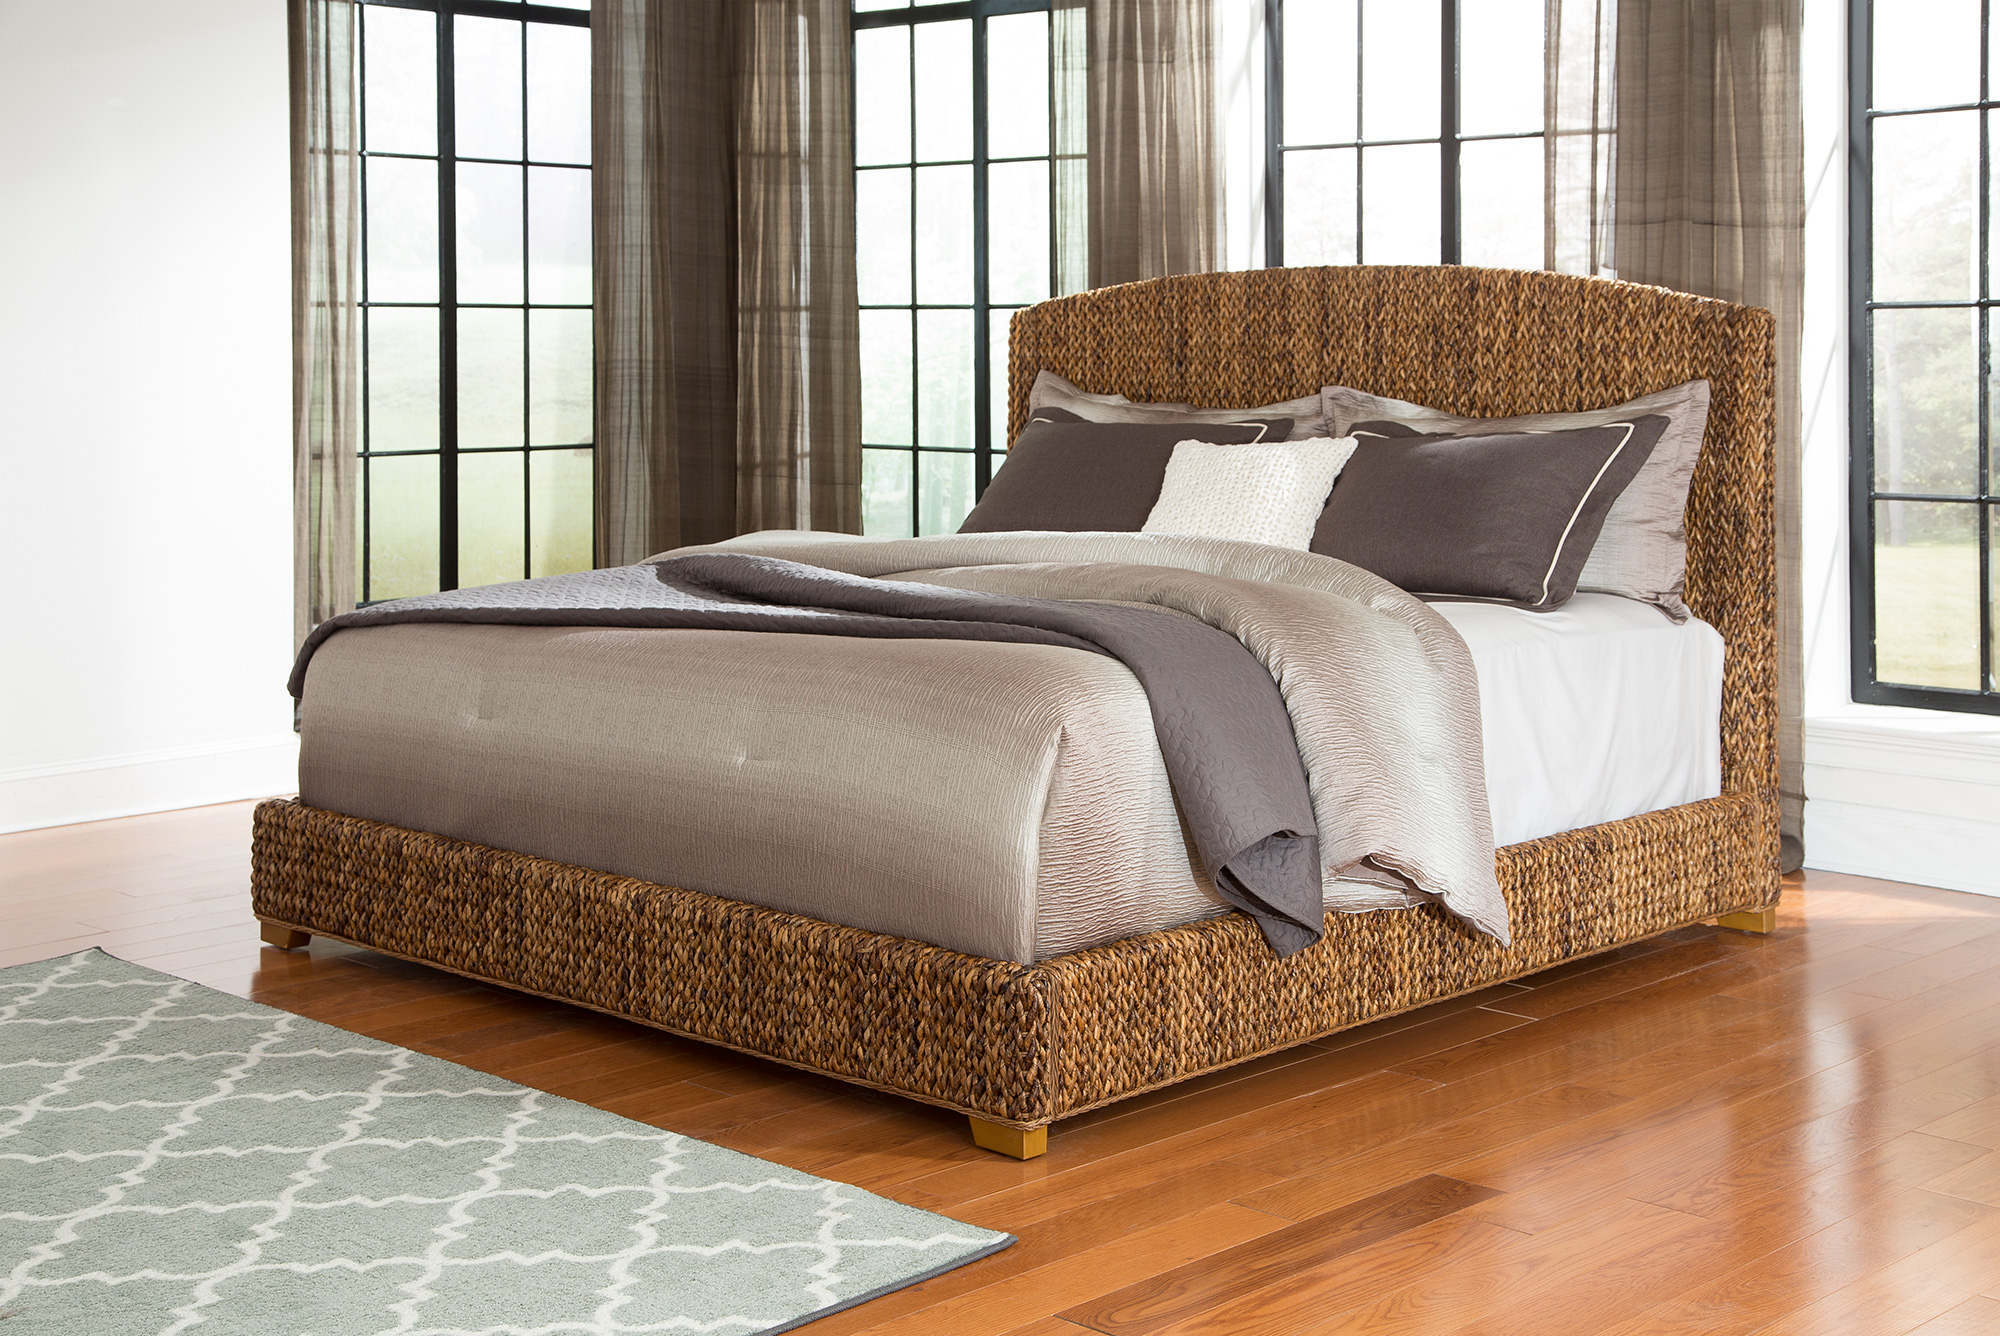 Coaster Laughton 300501q Woven Banana Leaf Queen Bed Dunk Bright Furniture Platform Beds